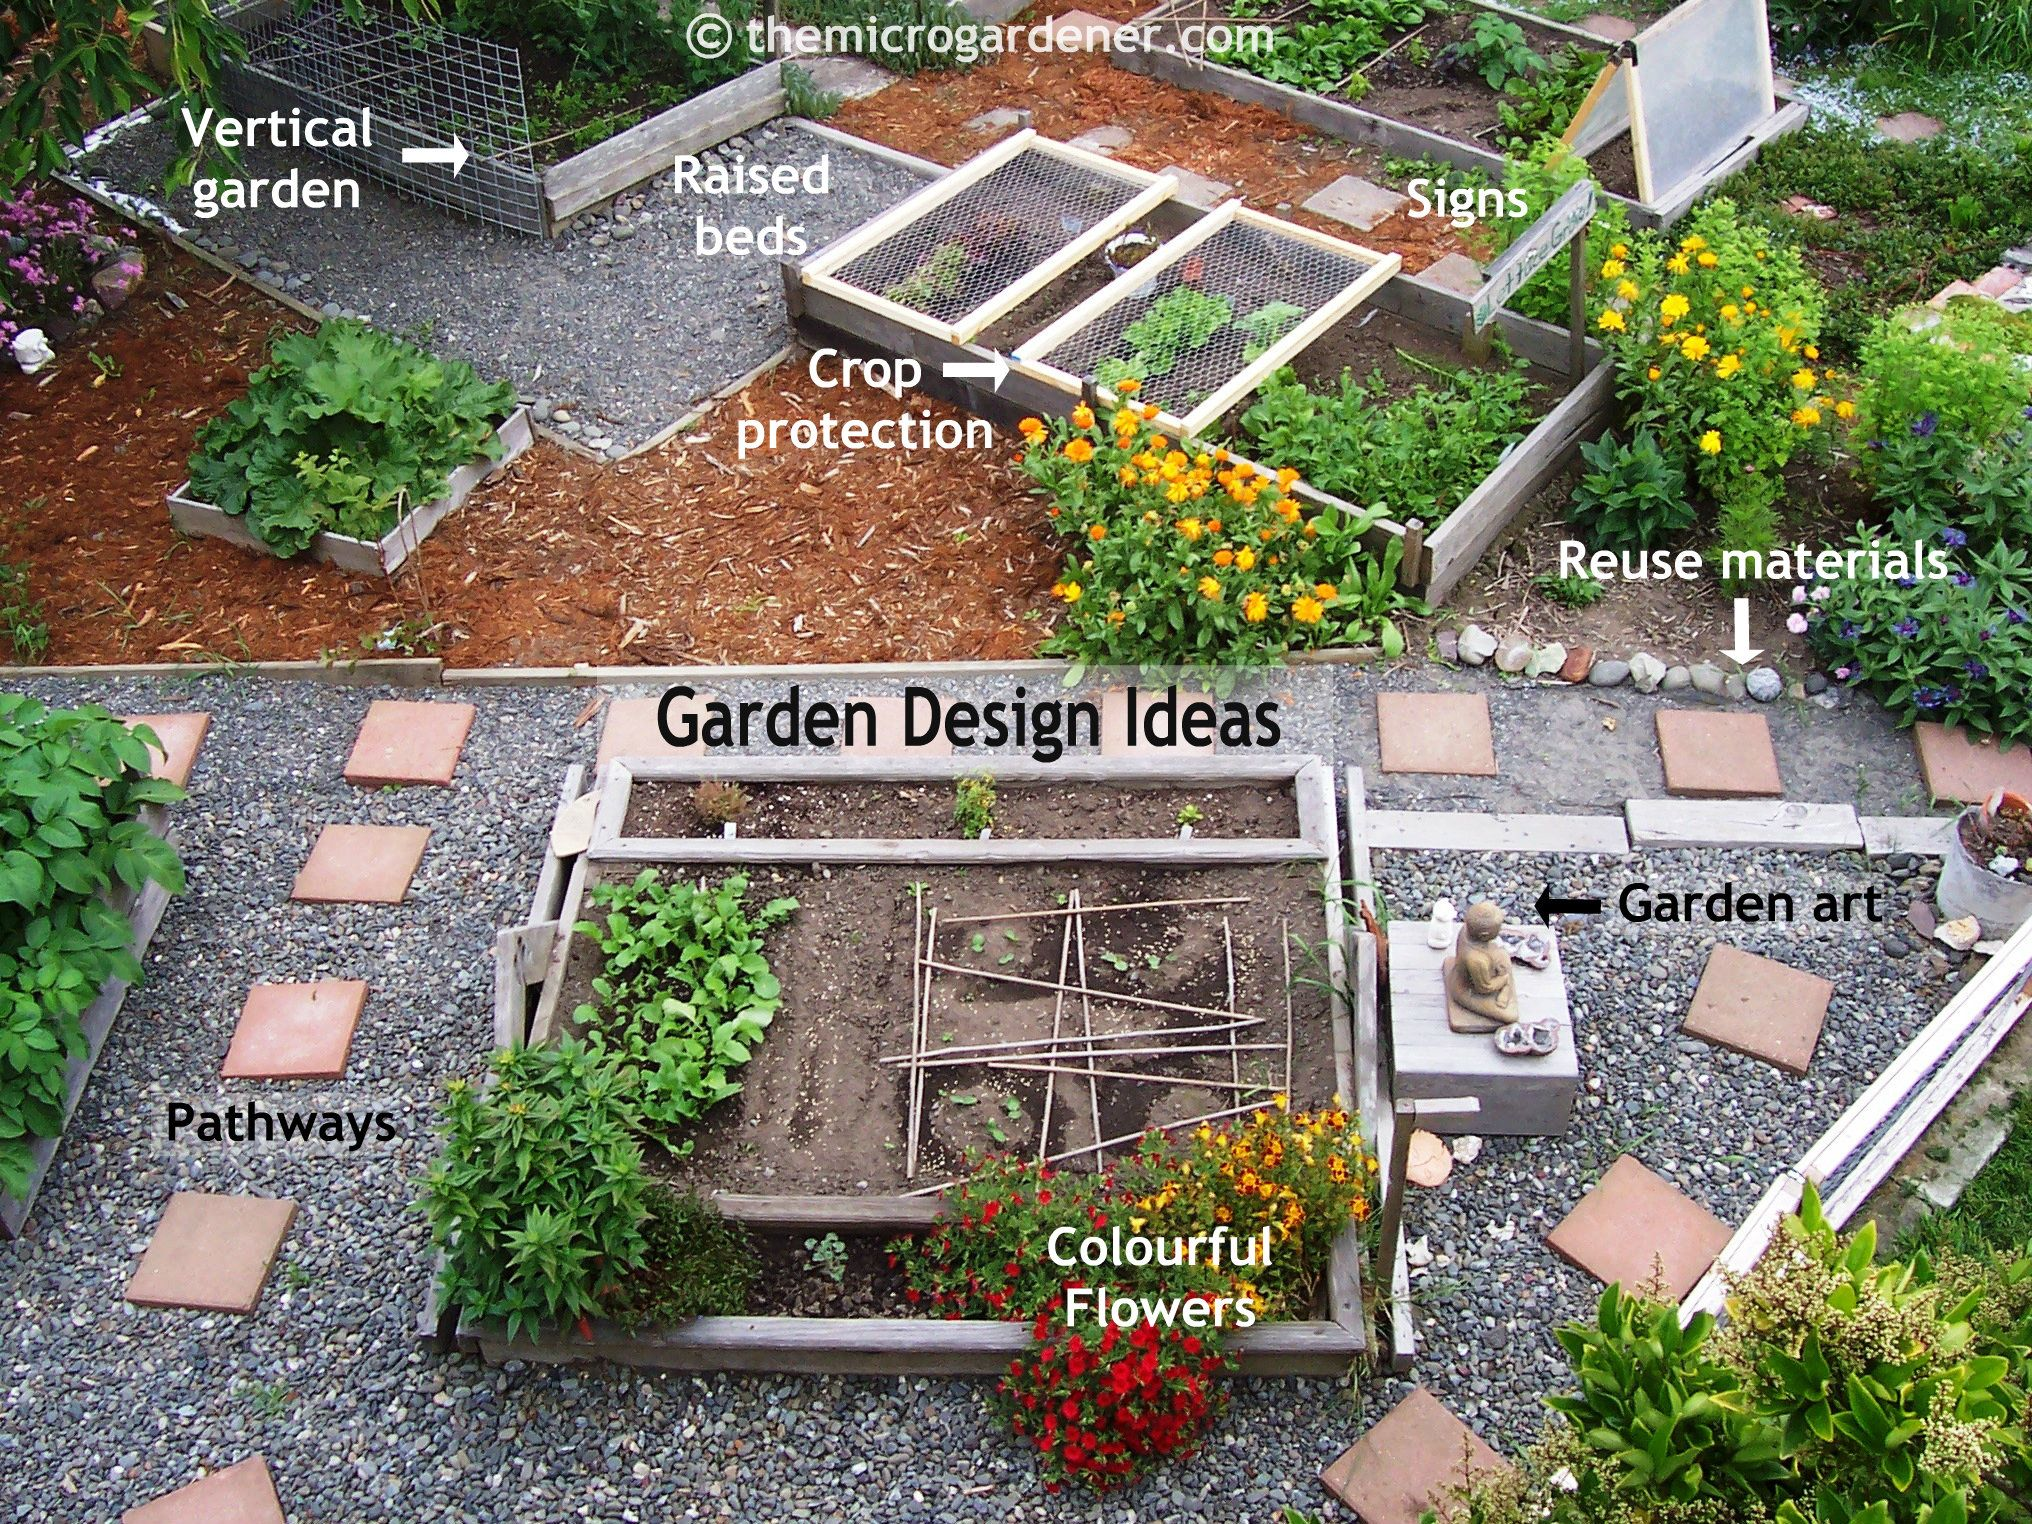 Small garden design ideas on pinterest vertical gardens for Small garden layouts designs